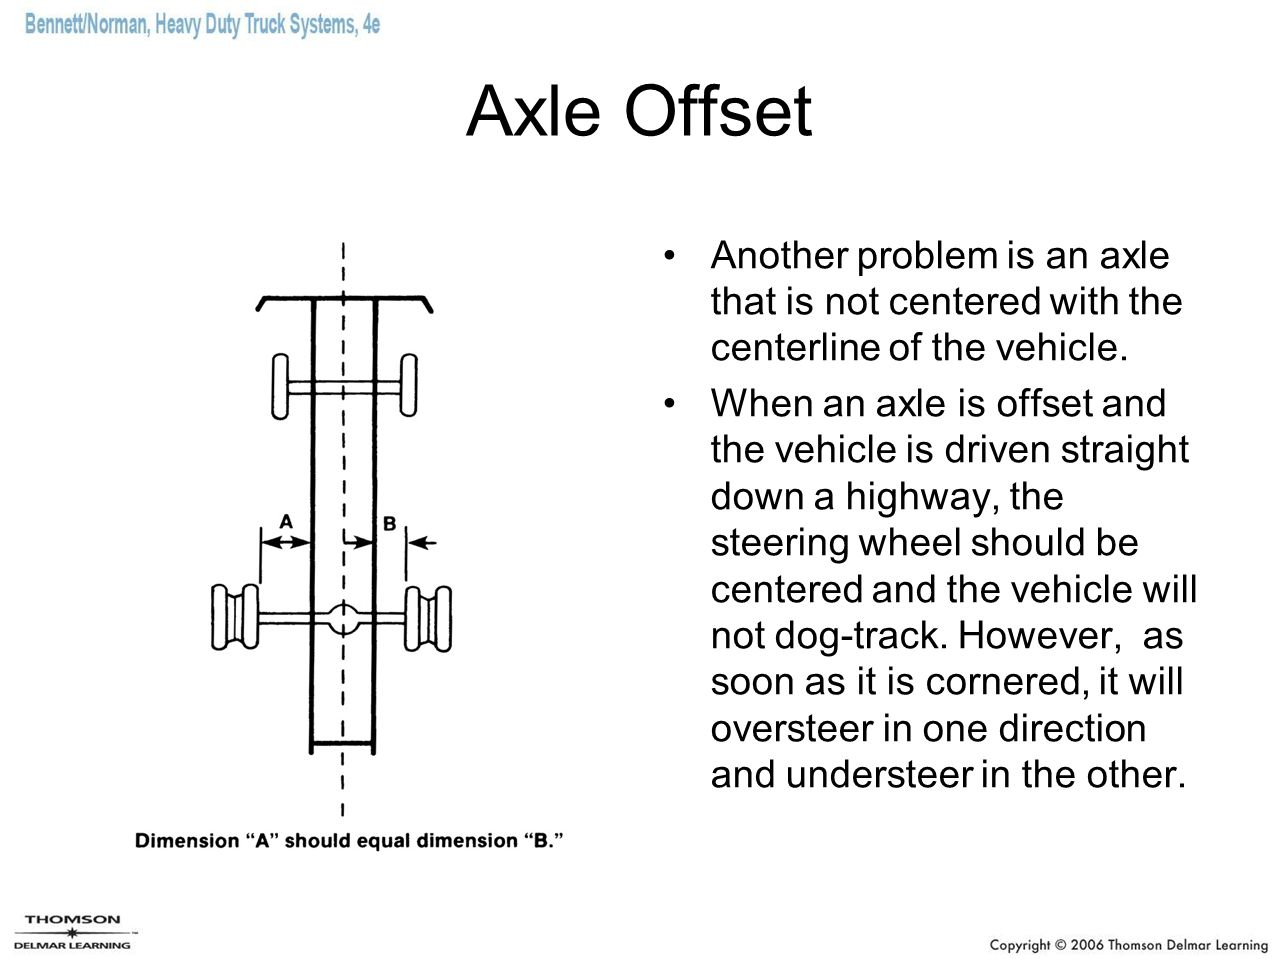 Axle Offset Another problem is an axle that is not centered with the centerline of the vehicle.